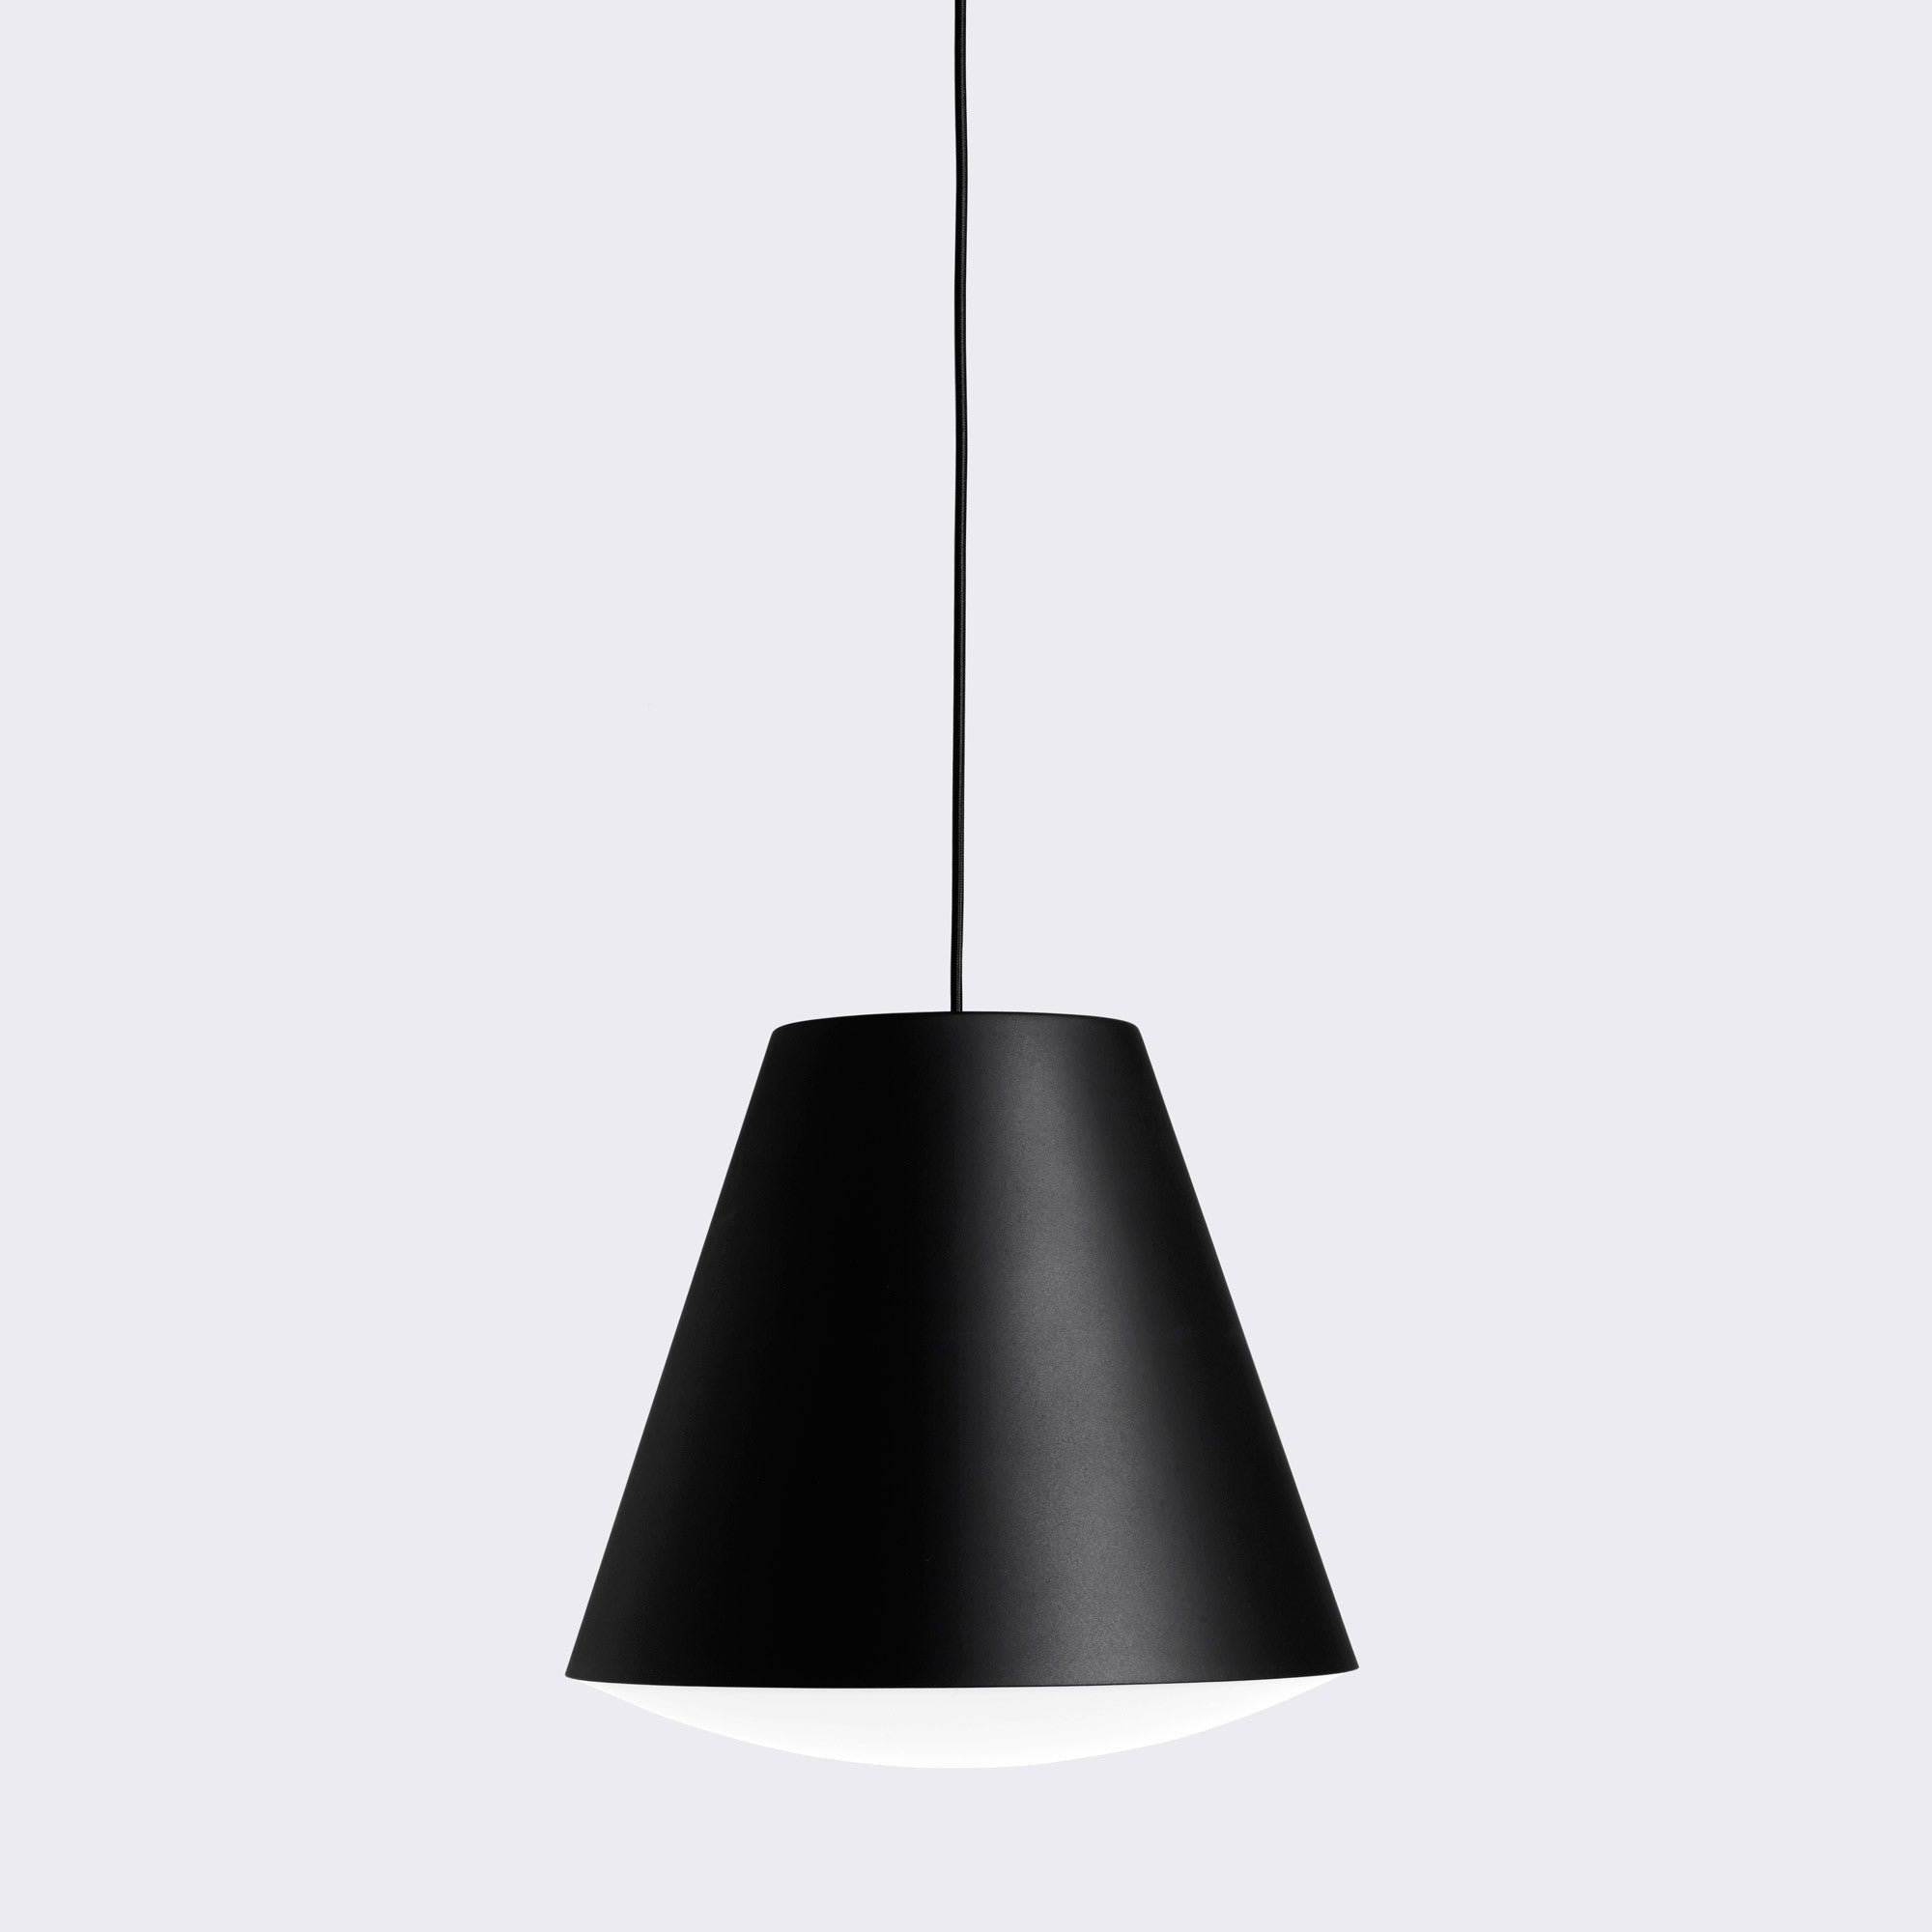 An elemental looking light available as either a small or large pendant. The fabric cord comes with a magnetic moulded ceiling cap in a textured finish. The ABS convex diffuser emits a warm, even illumination.